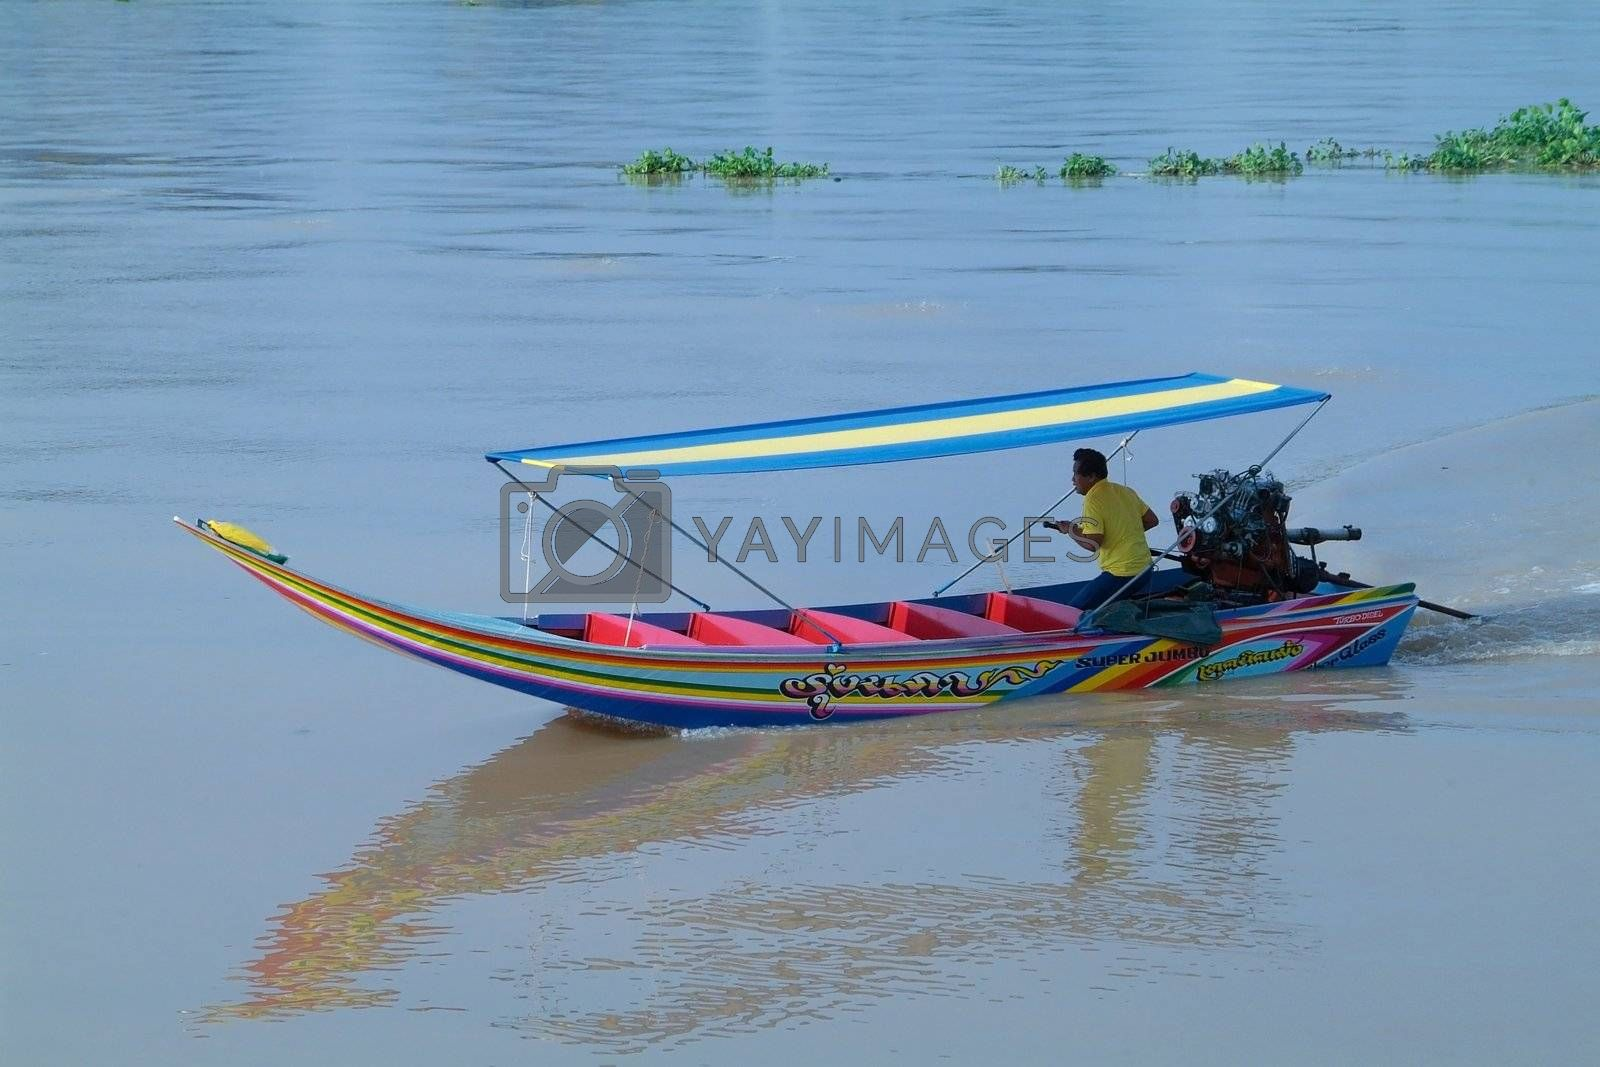 Royalty free image of High-speed longtail boat in Thailand by epixx